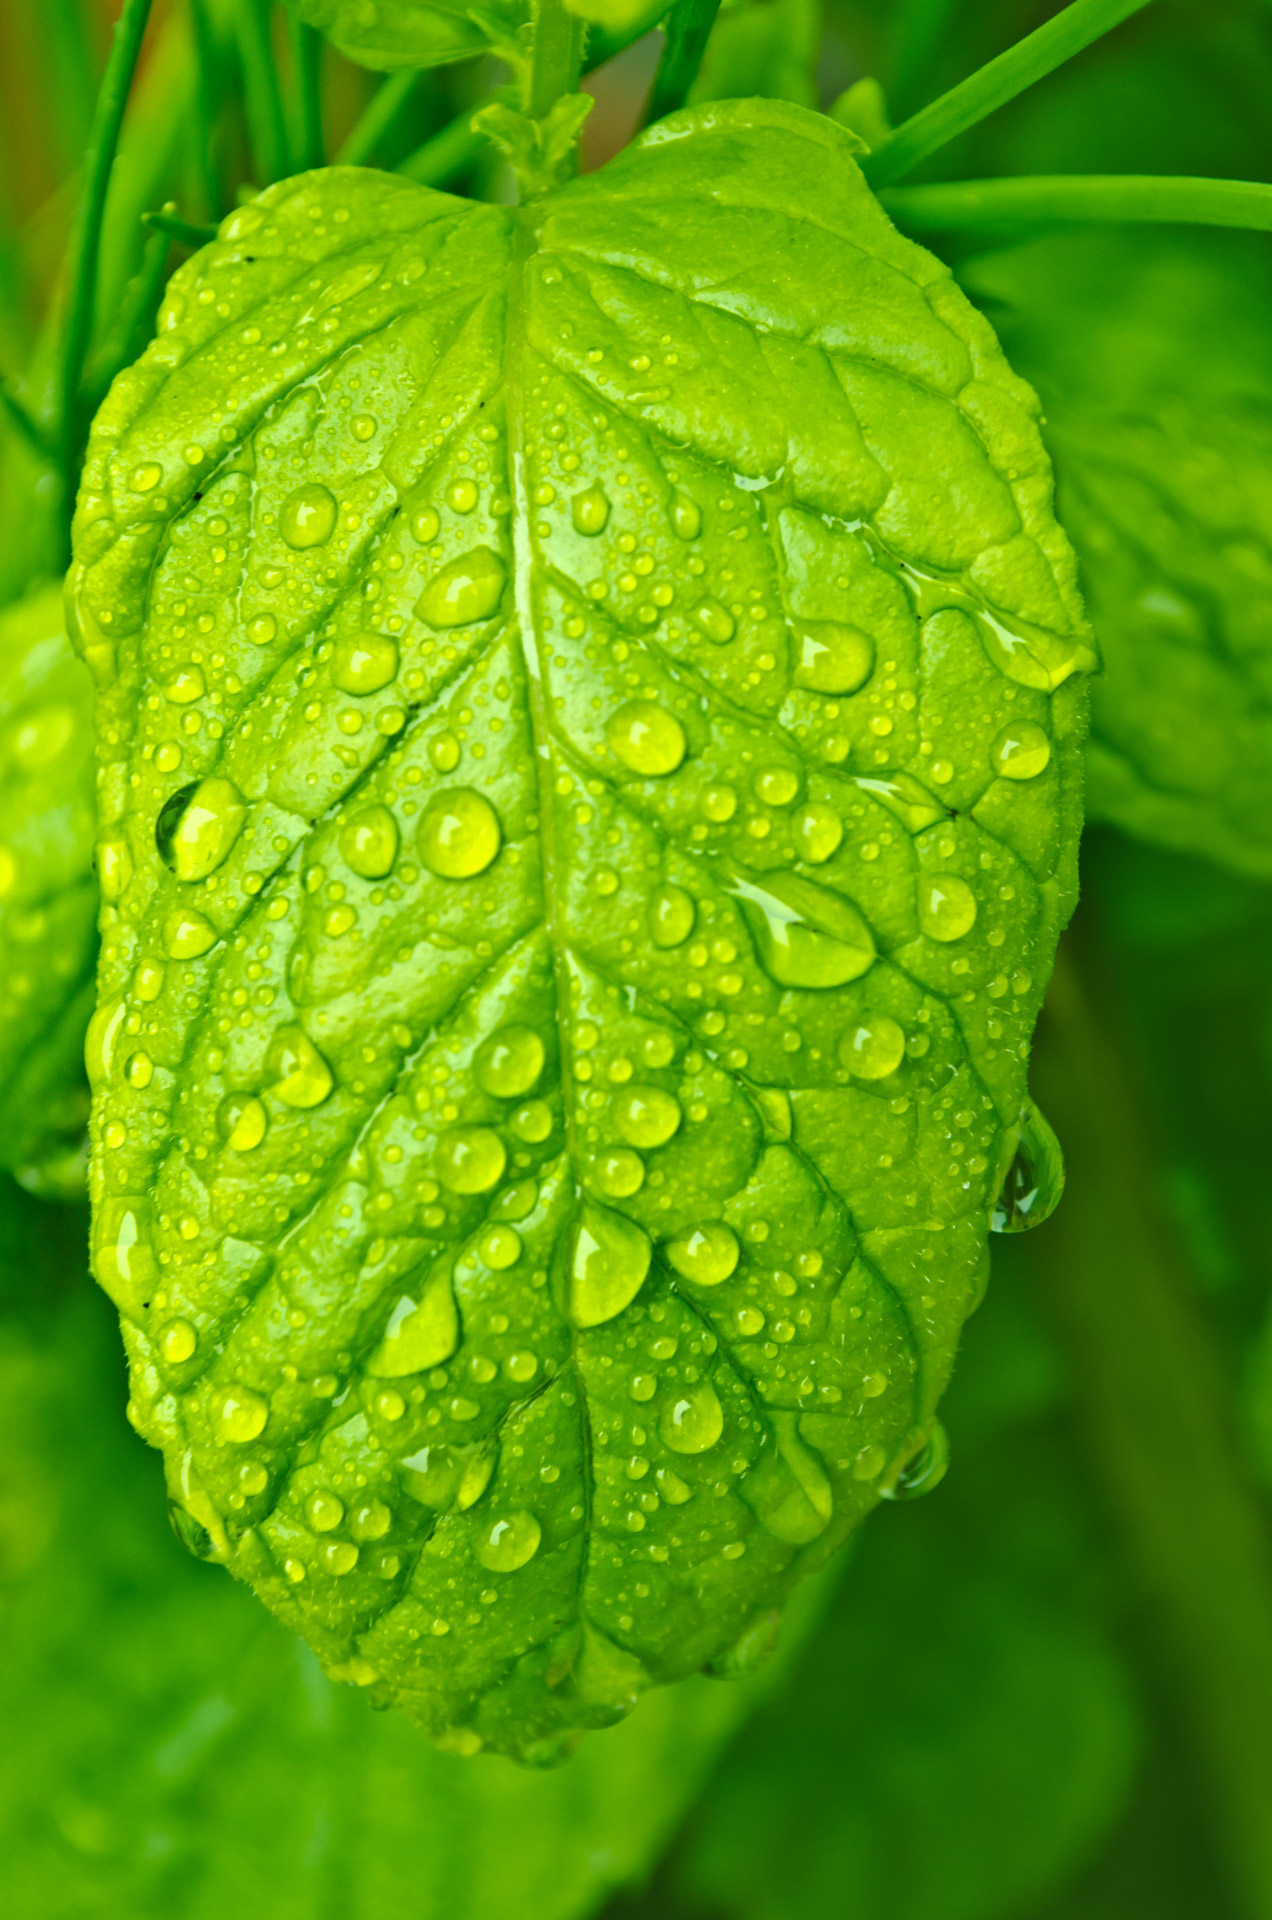 Beautiful Wallpaper Hd With Quotes Water Drops On The Leaf Free Stock Photo Public Domain